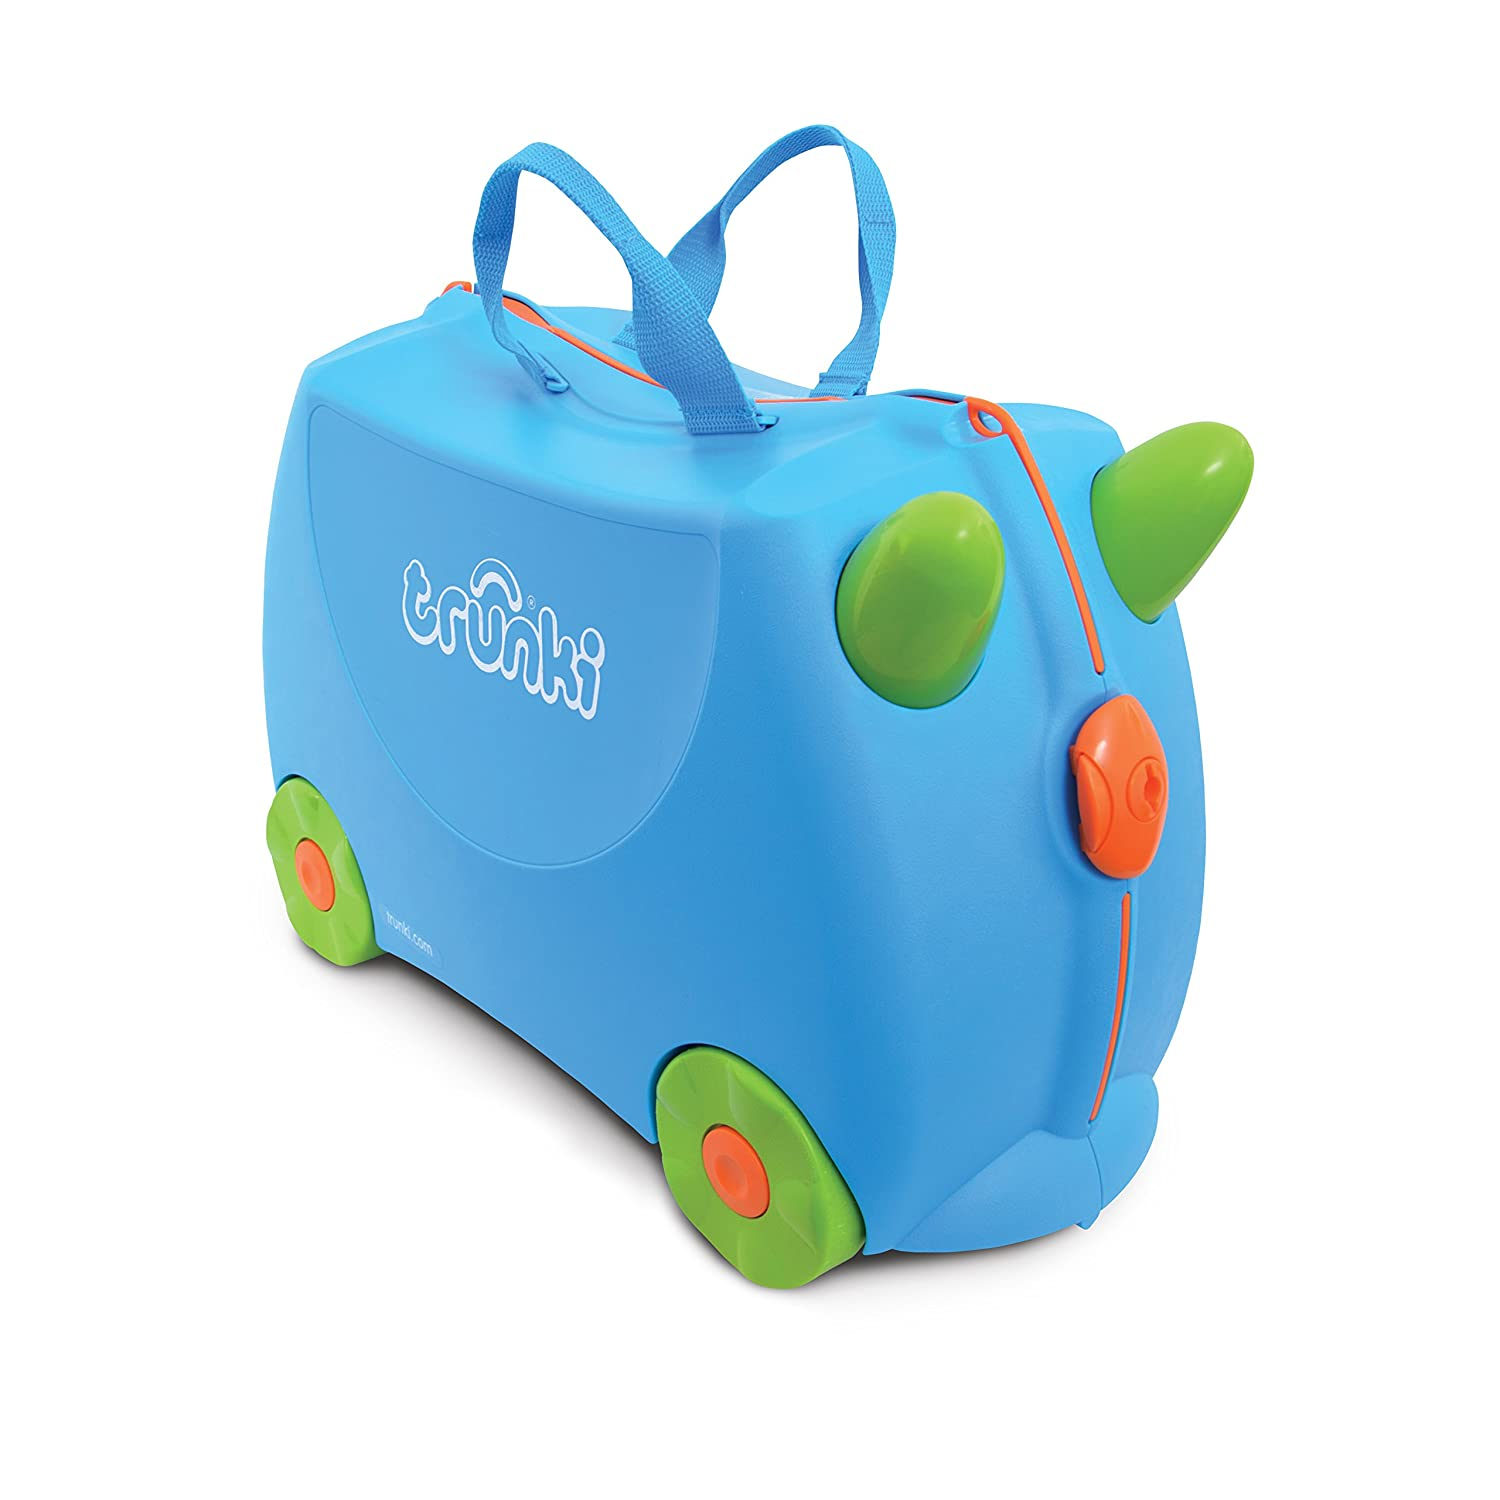 Terrance 0054-GB01 Trunki Original Kids Ride-On Suitcase and Carry-On Luggage Blue